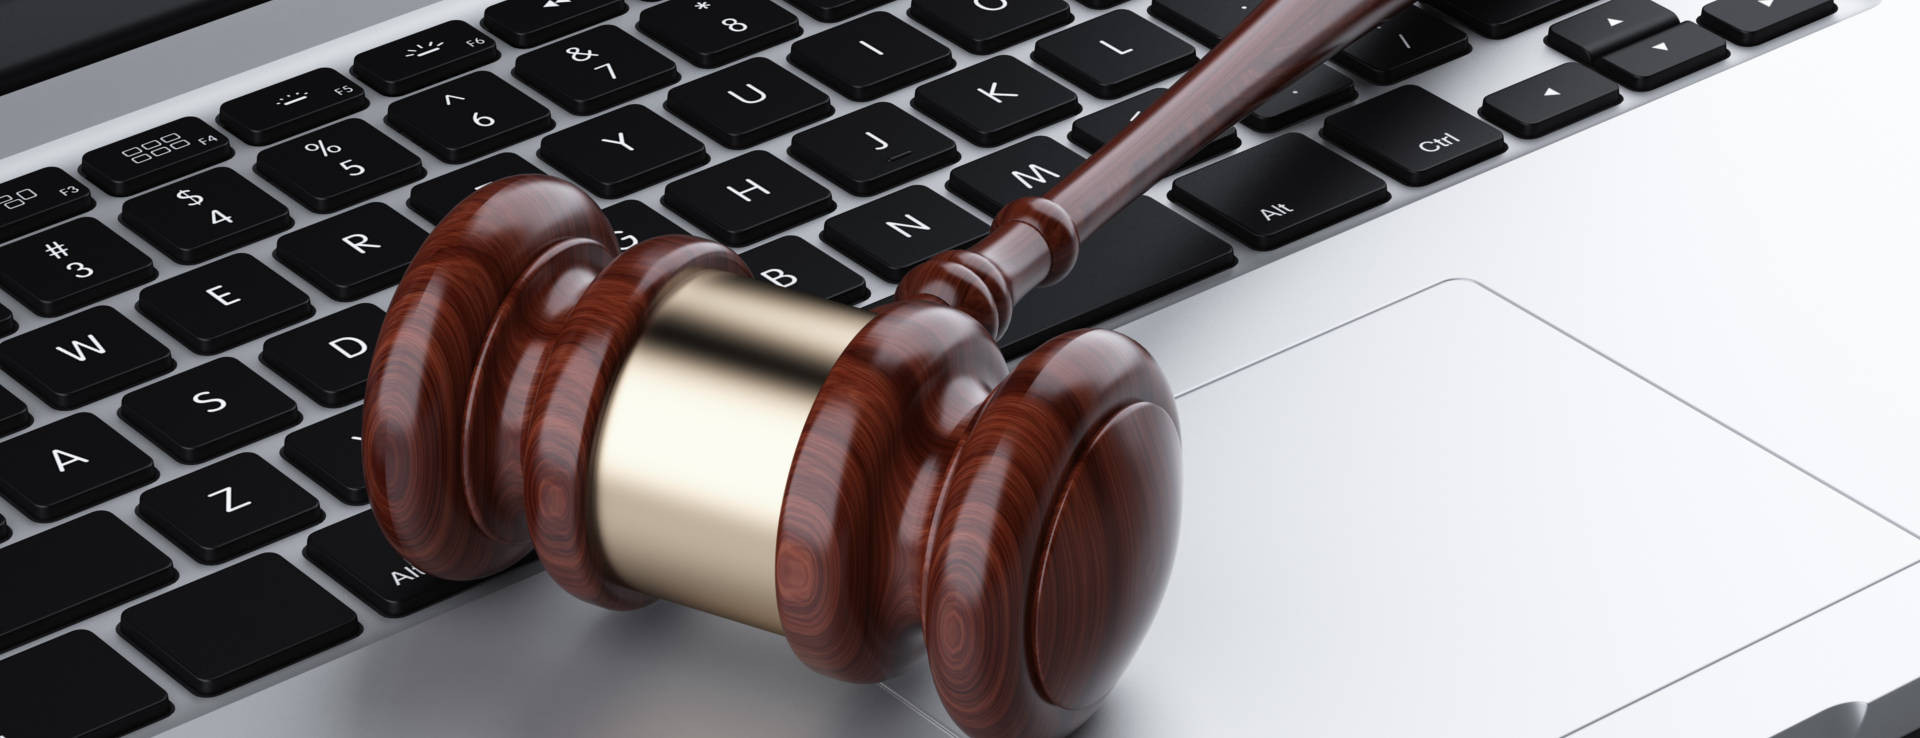 Refurbished Mac Buyers Guide for Lawyers and Attorneys